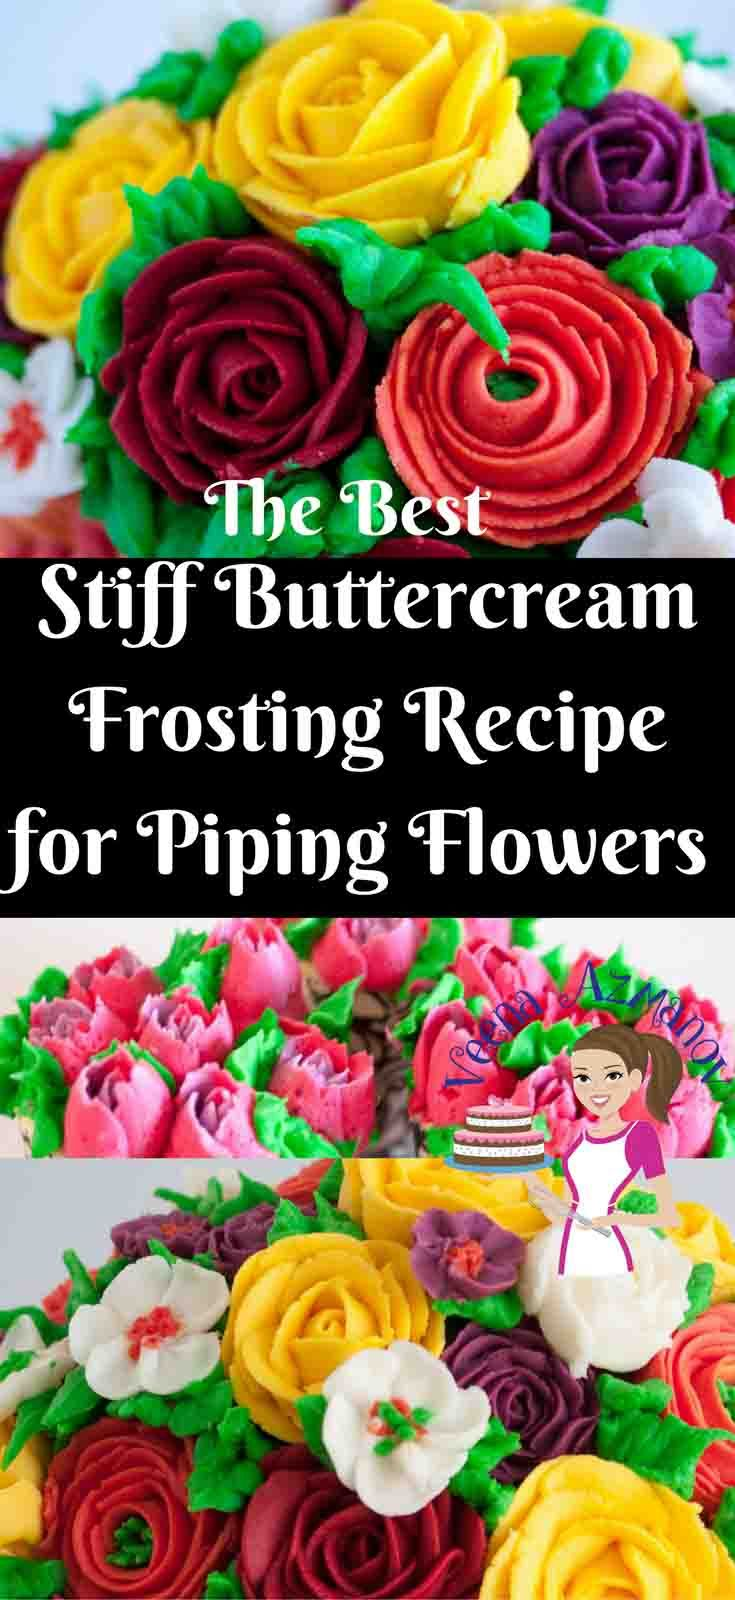 The Best Stiff Buttercream Recipe for Piping Flowers ...